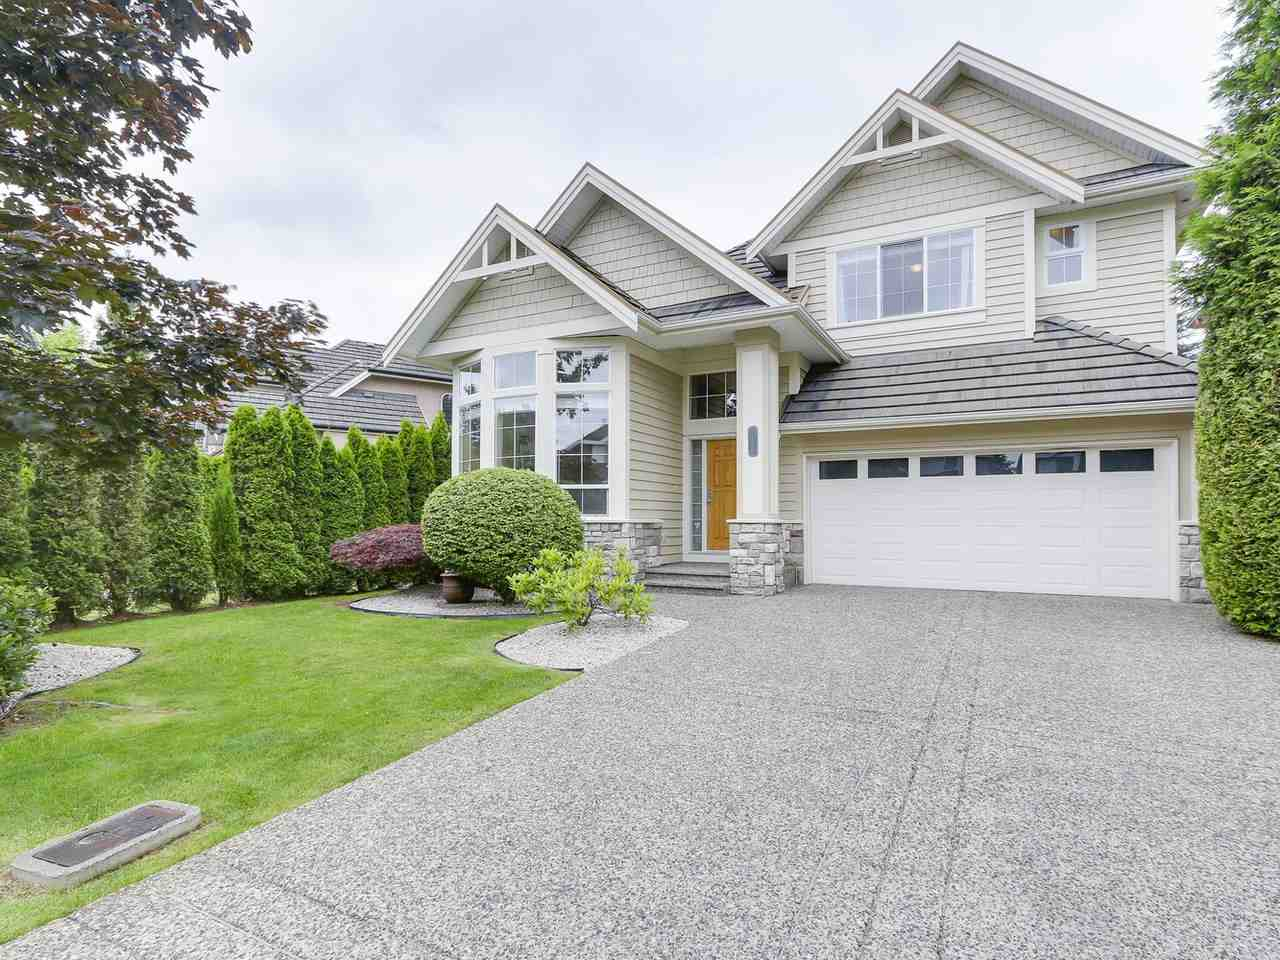 Detached at 3569 ROSEMARY HEIGHTS CRESCENT, South Surrey White Rock, British Columbia. Image 1